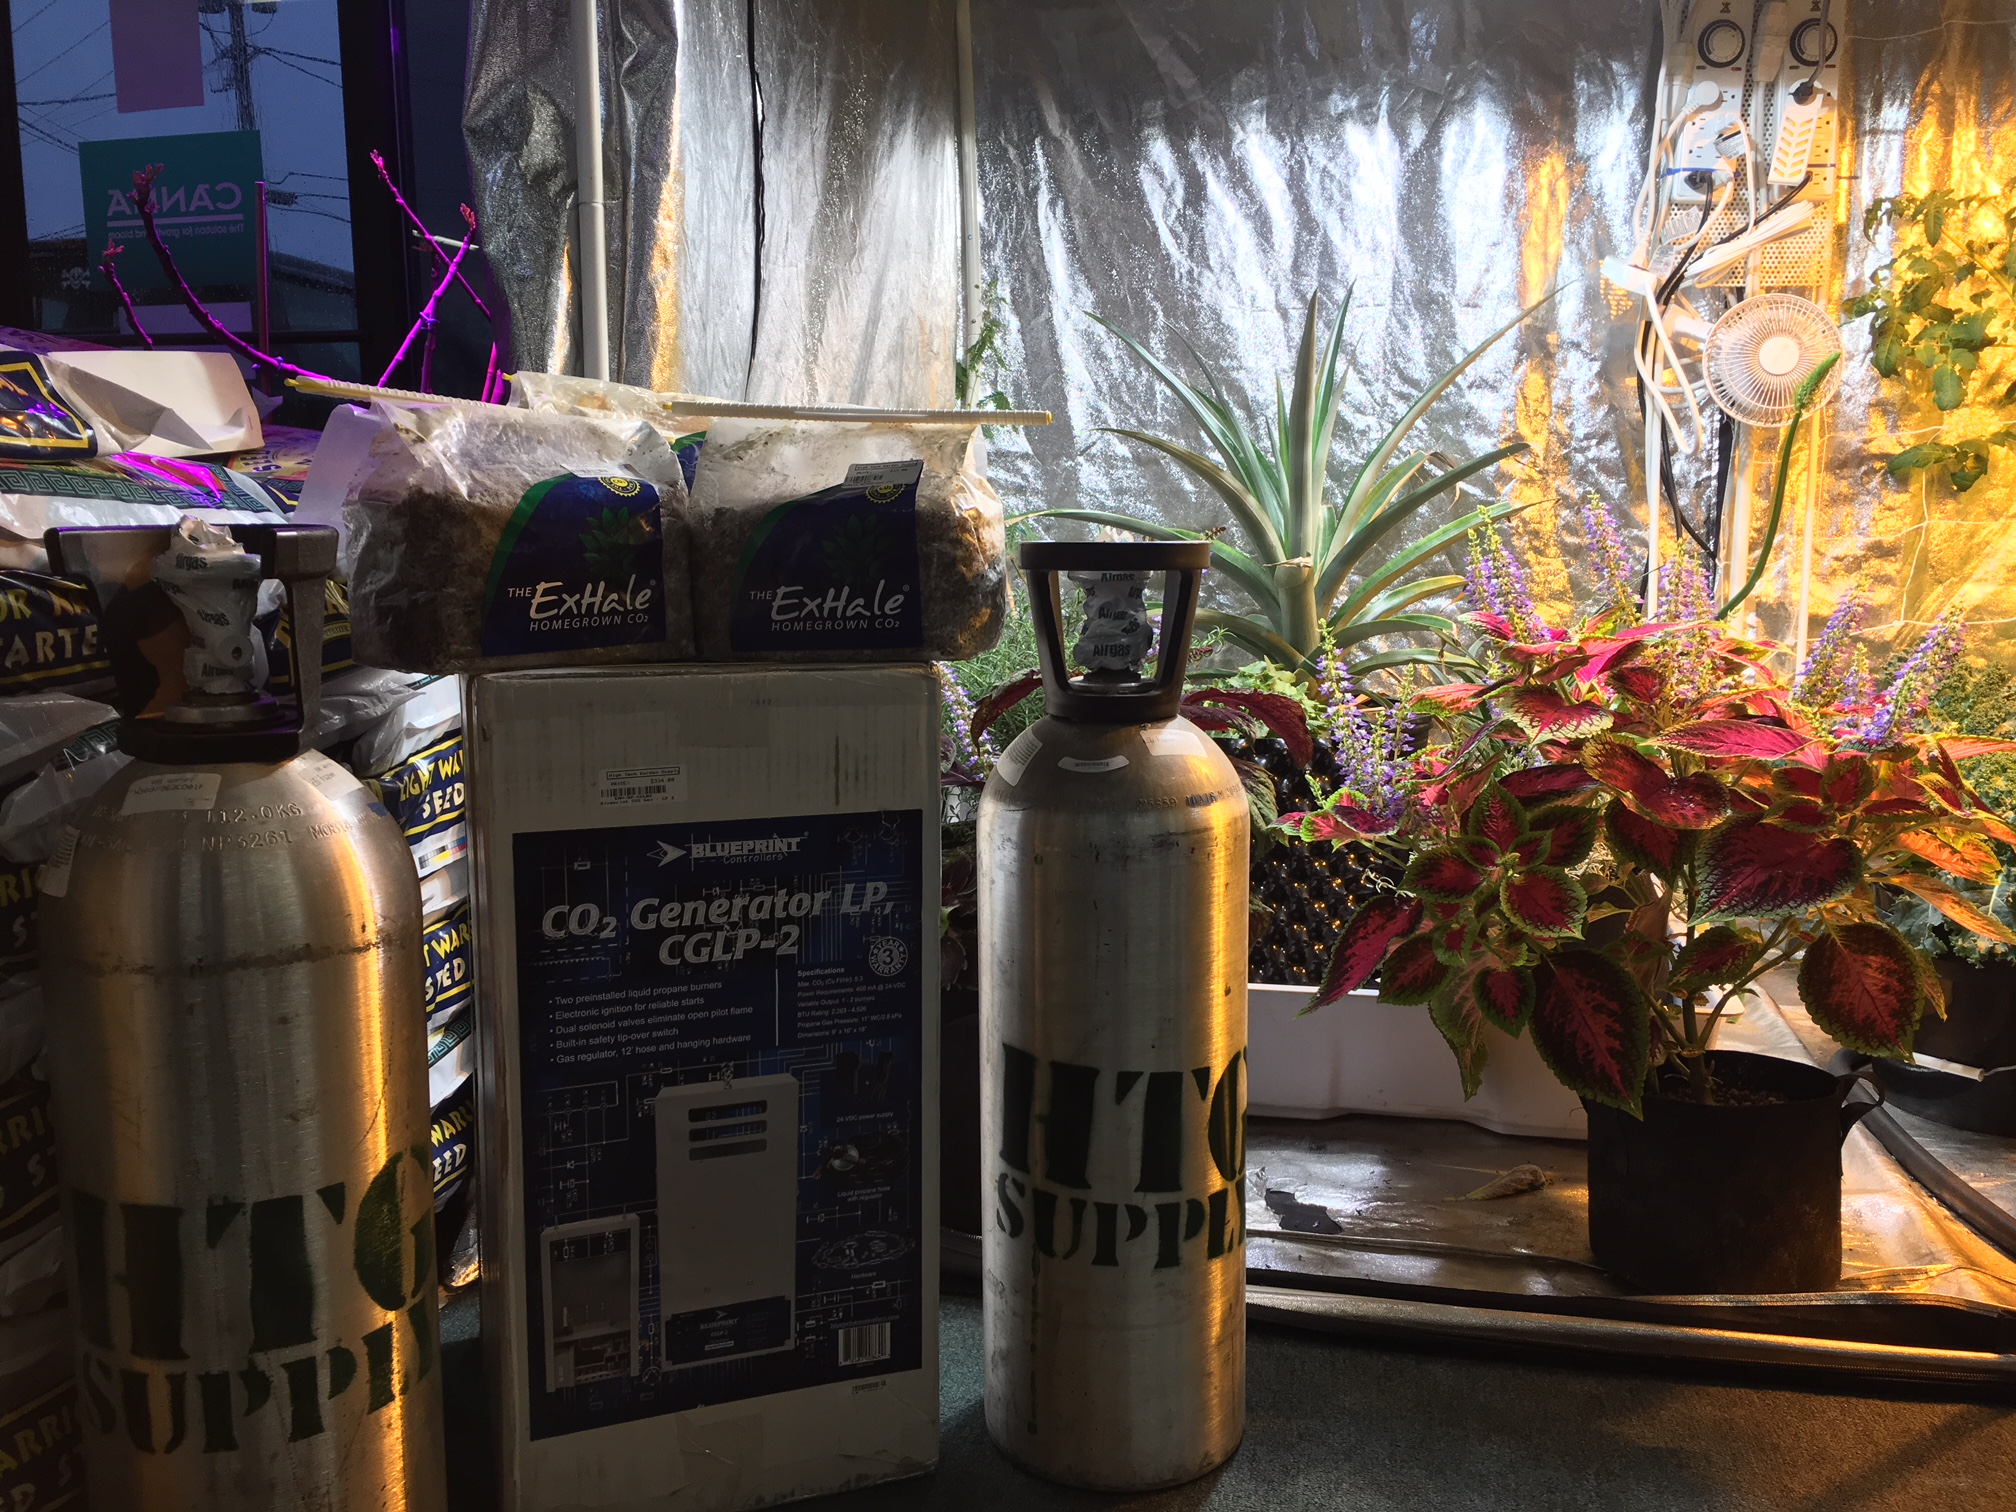 CO2 Enrichment Kits and Supplies for Indoor Gardens